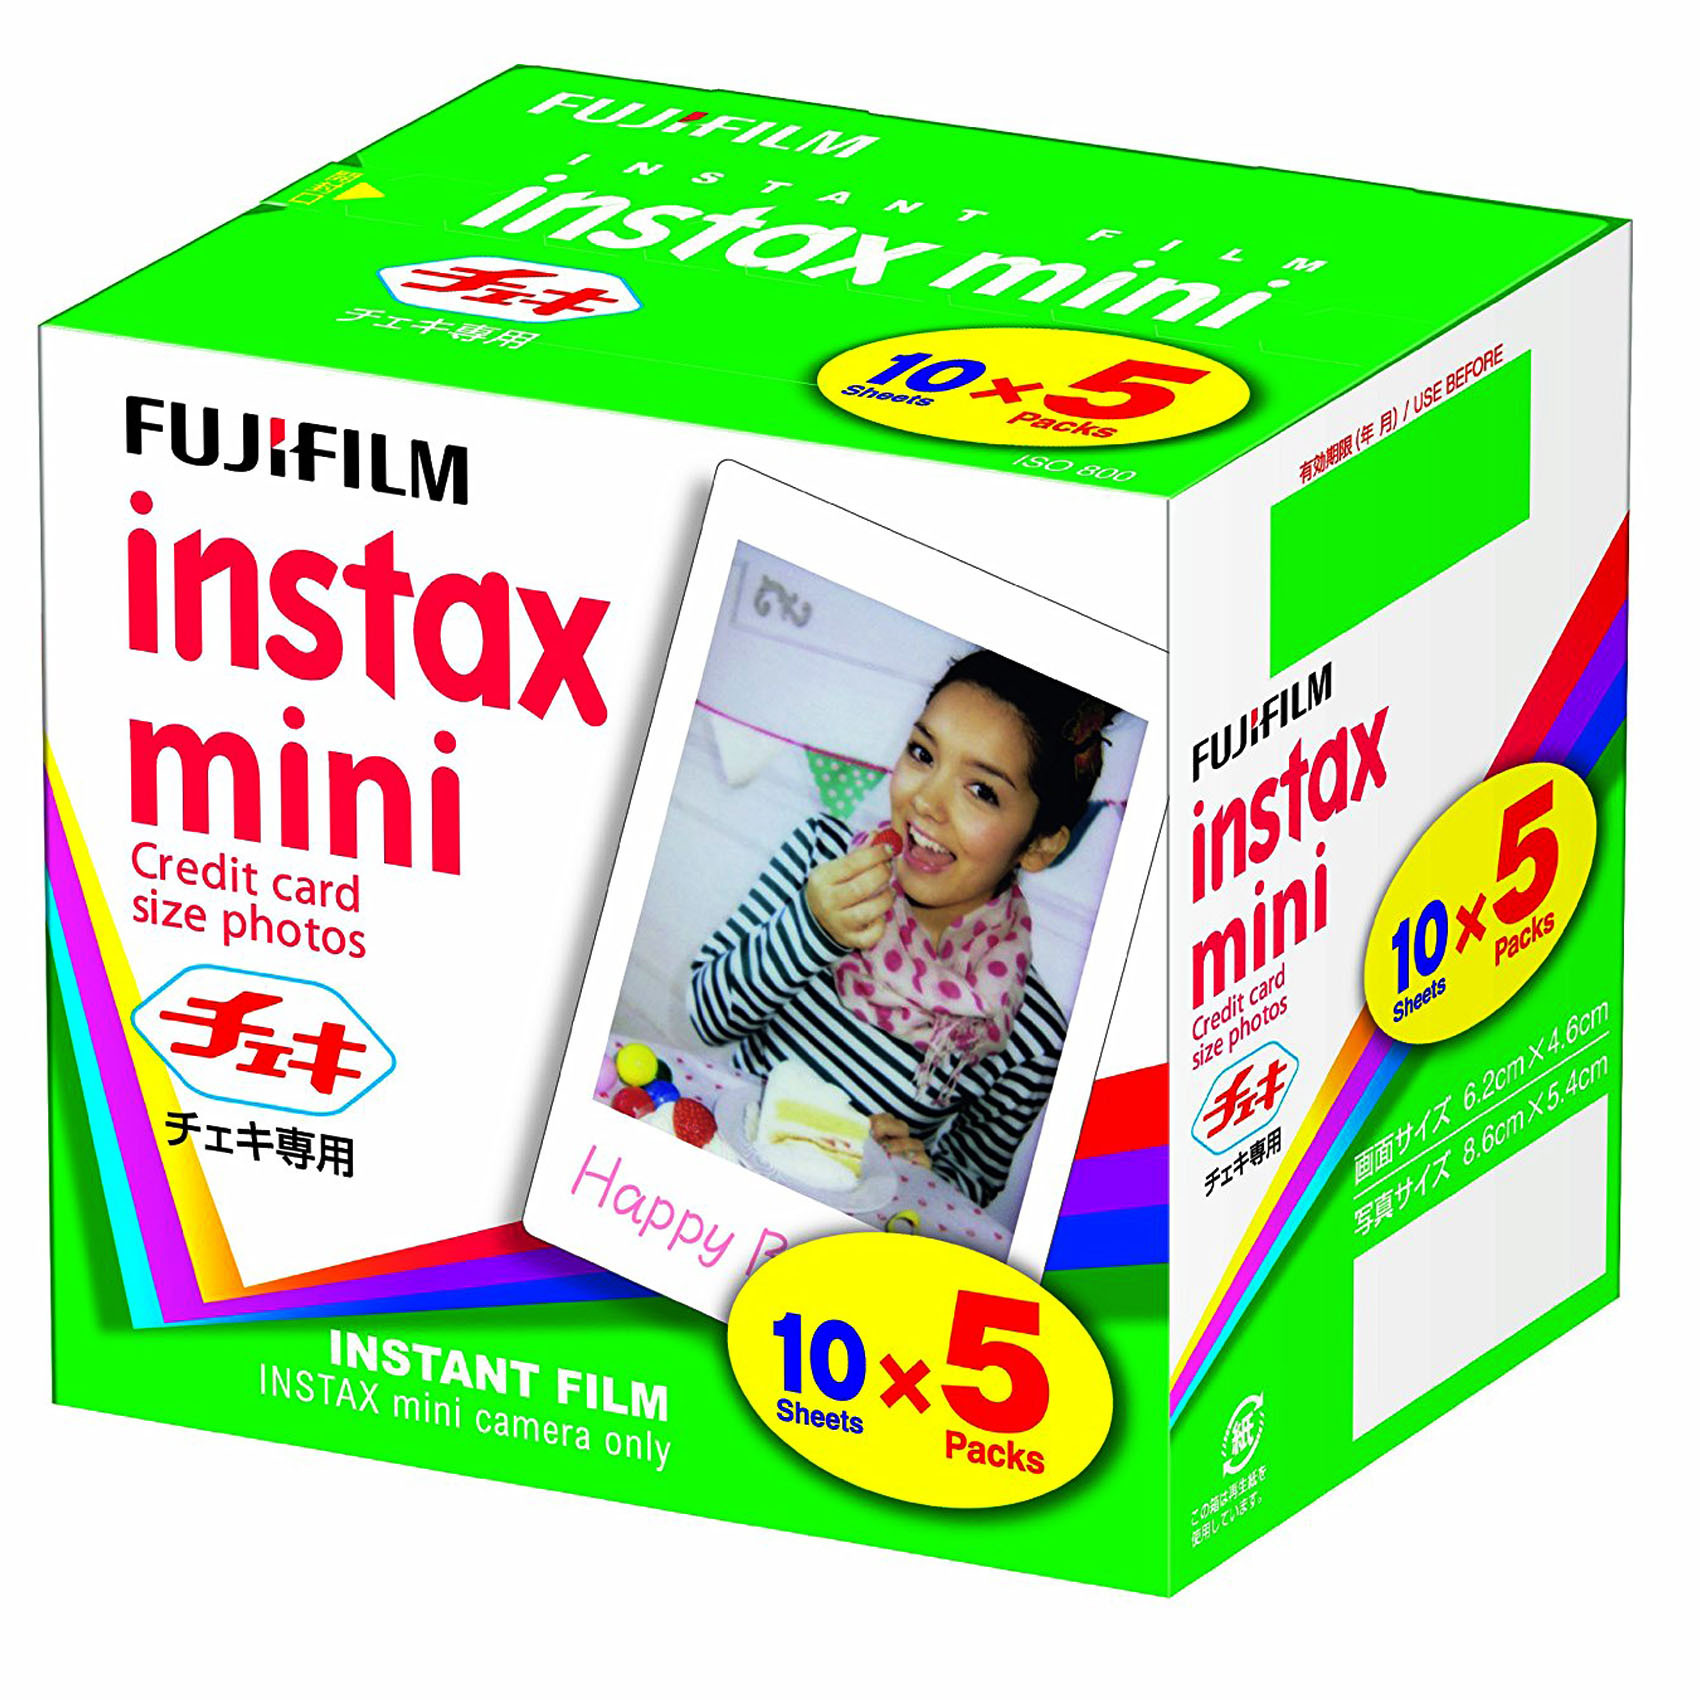 FUJIFILM - FILM INSTAX X5 PACKS